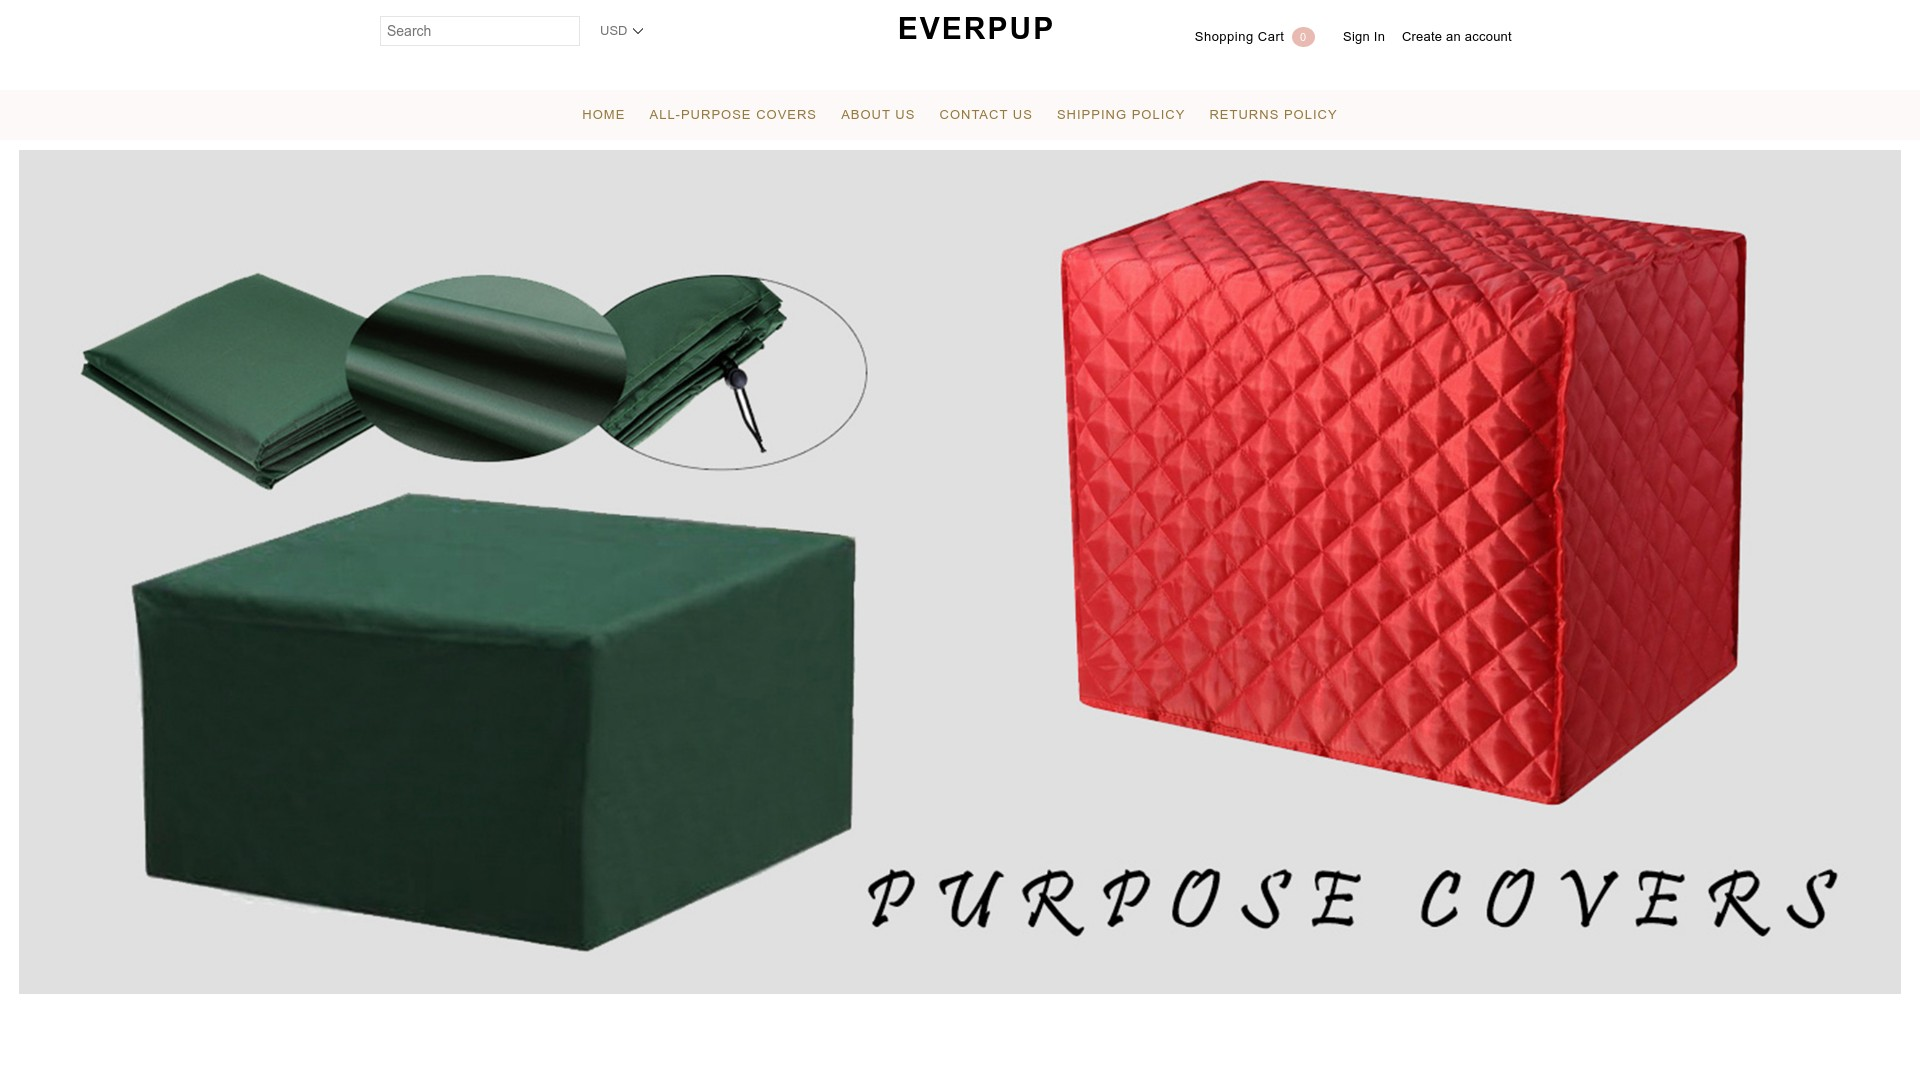 Everpup Website Reviews  is the Store a Scam?